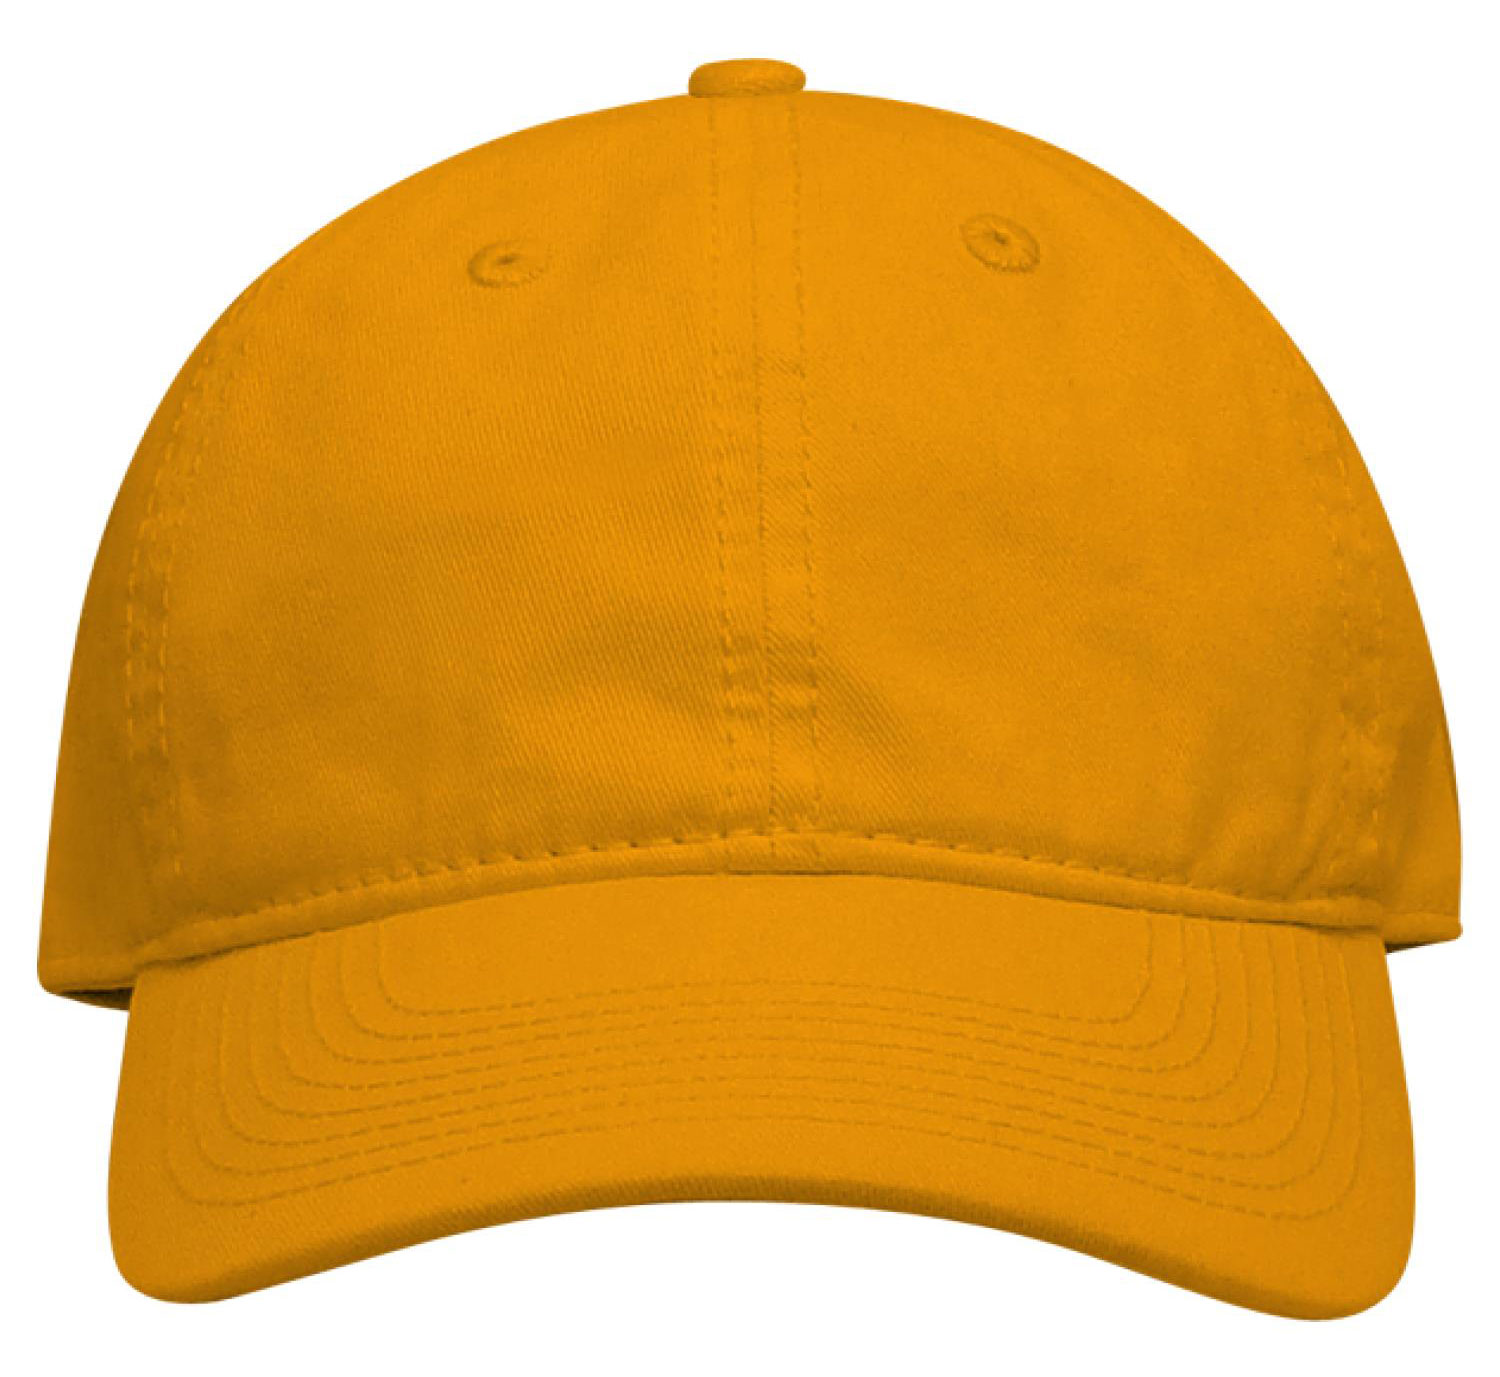 Washed Twill Cotton Cap by The Game